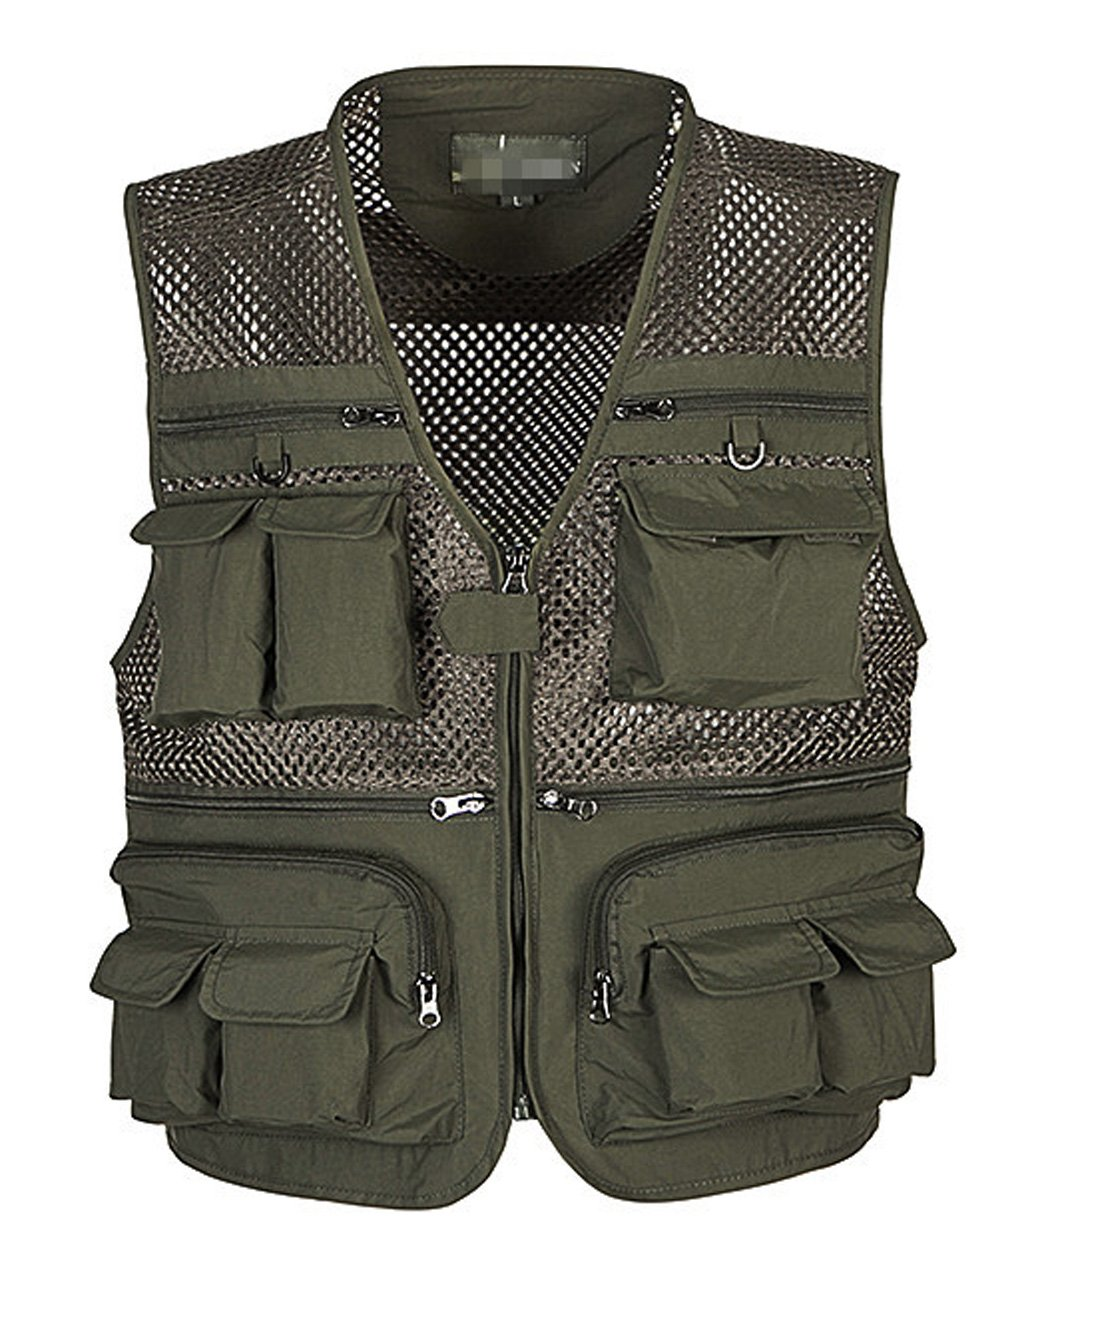 Gihuo Men's Summer Cotton Leisure Outdoor Pockets Fish Photo Journalist Vest Plus Size (Small, Army Green-mesh)